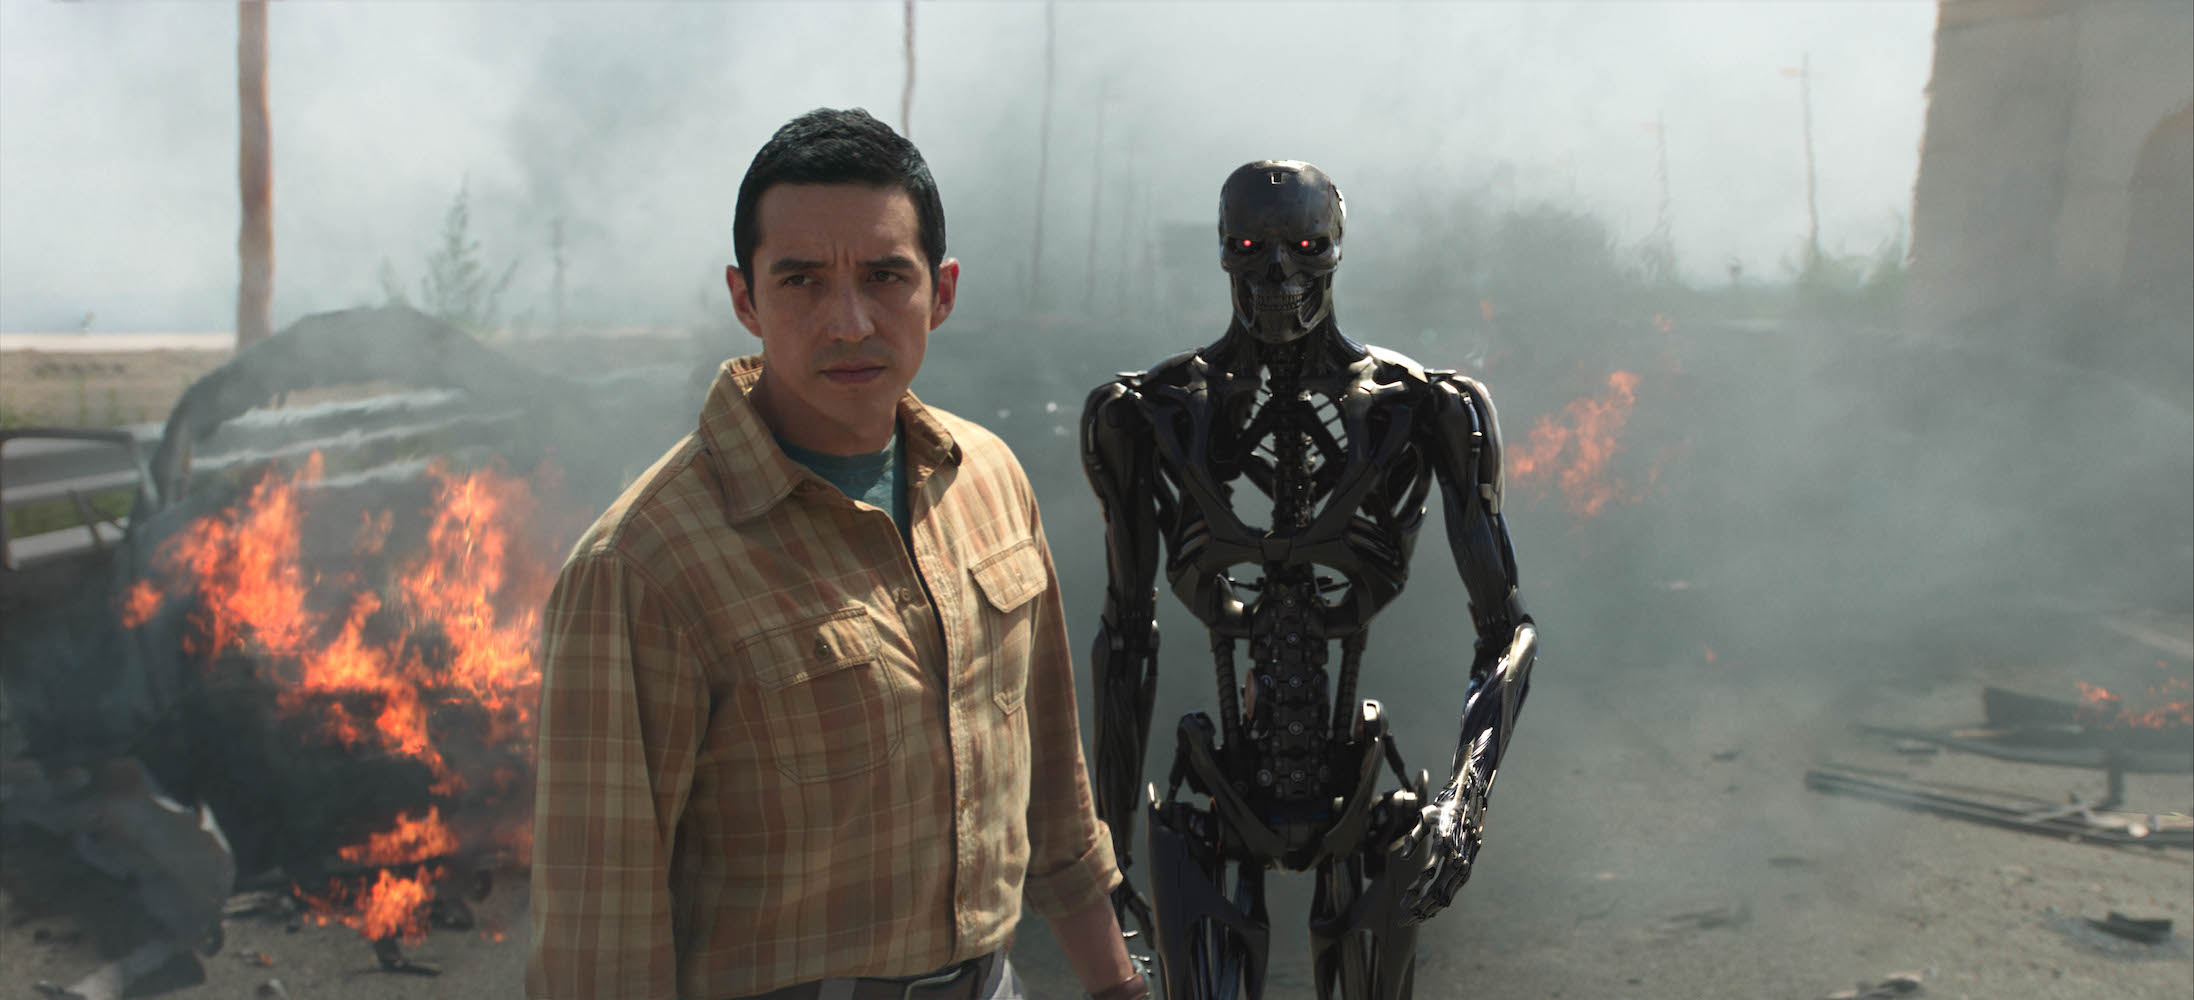 TRAILER: Here's Your First Look at Gabriel Luna as a Liquid Metal Android in 'Terminator: Dark Fate'